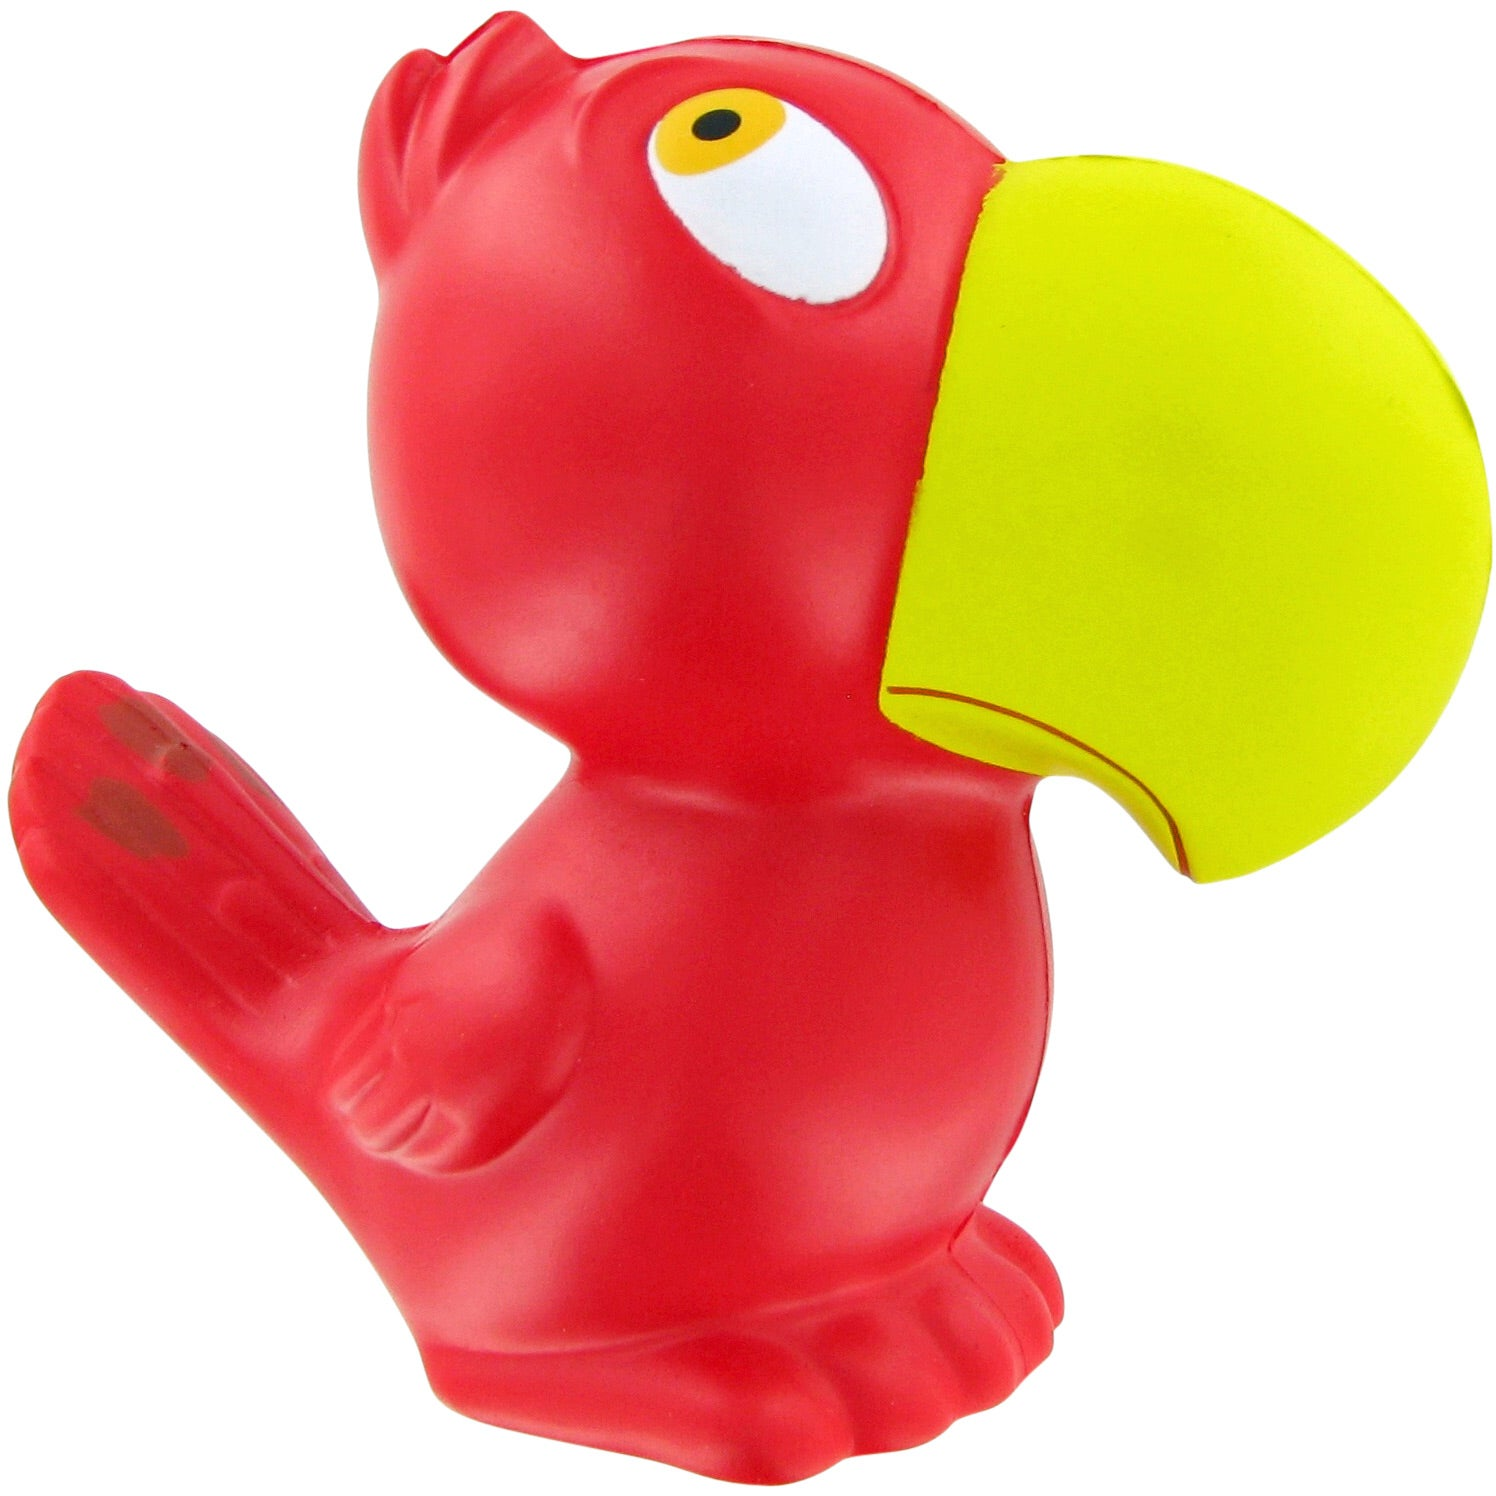 Toys To Relieve Stress Stress : Parrot stress toy custom balls ea